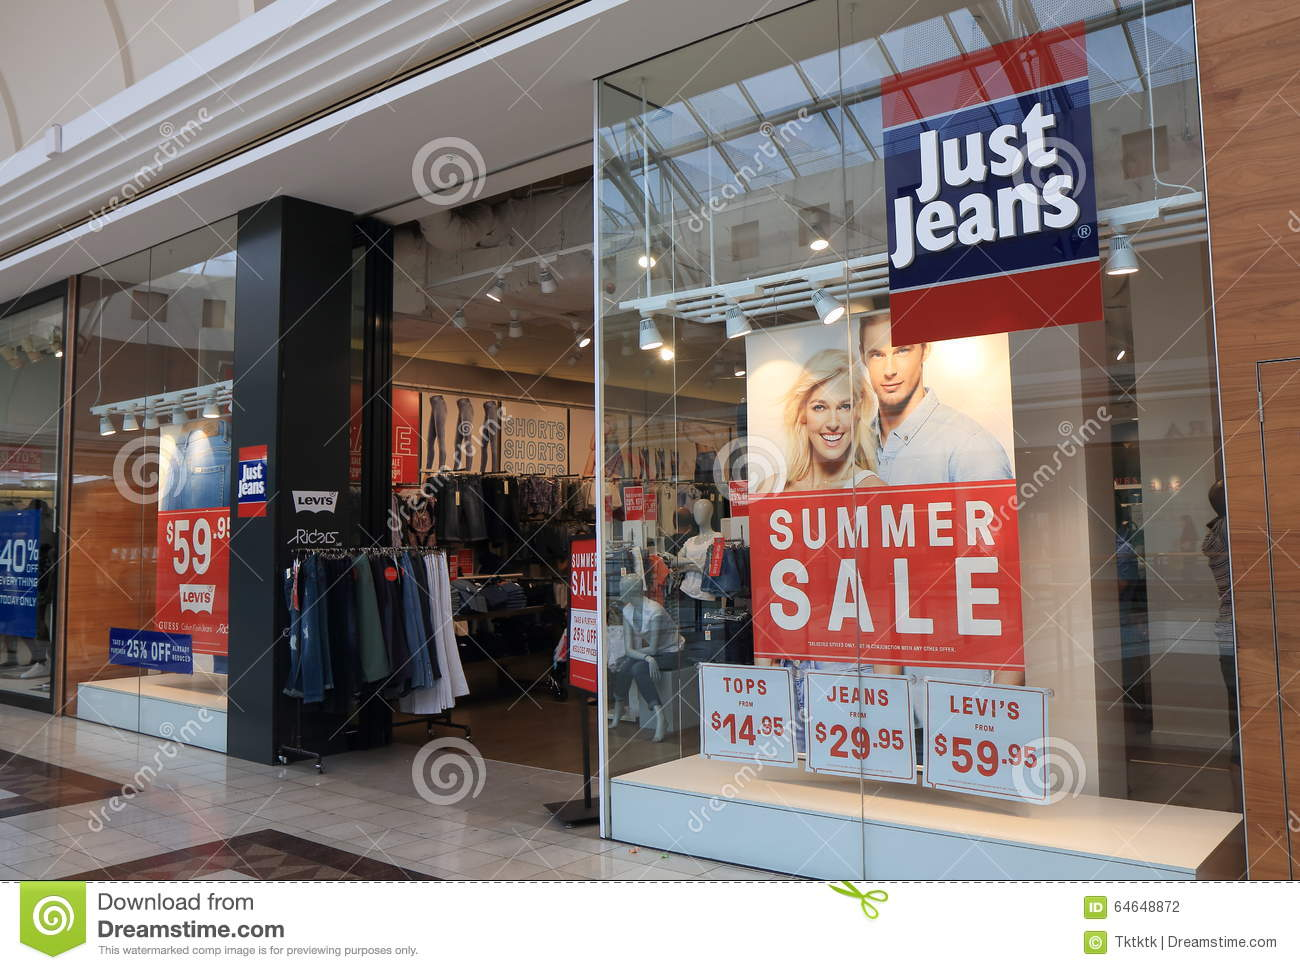 Just clothing store